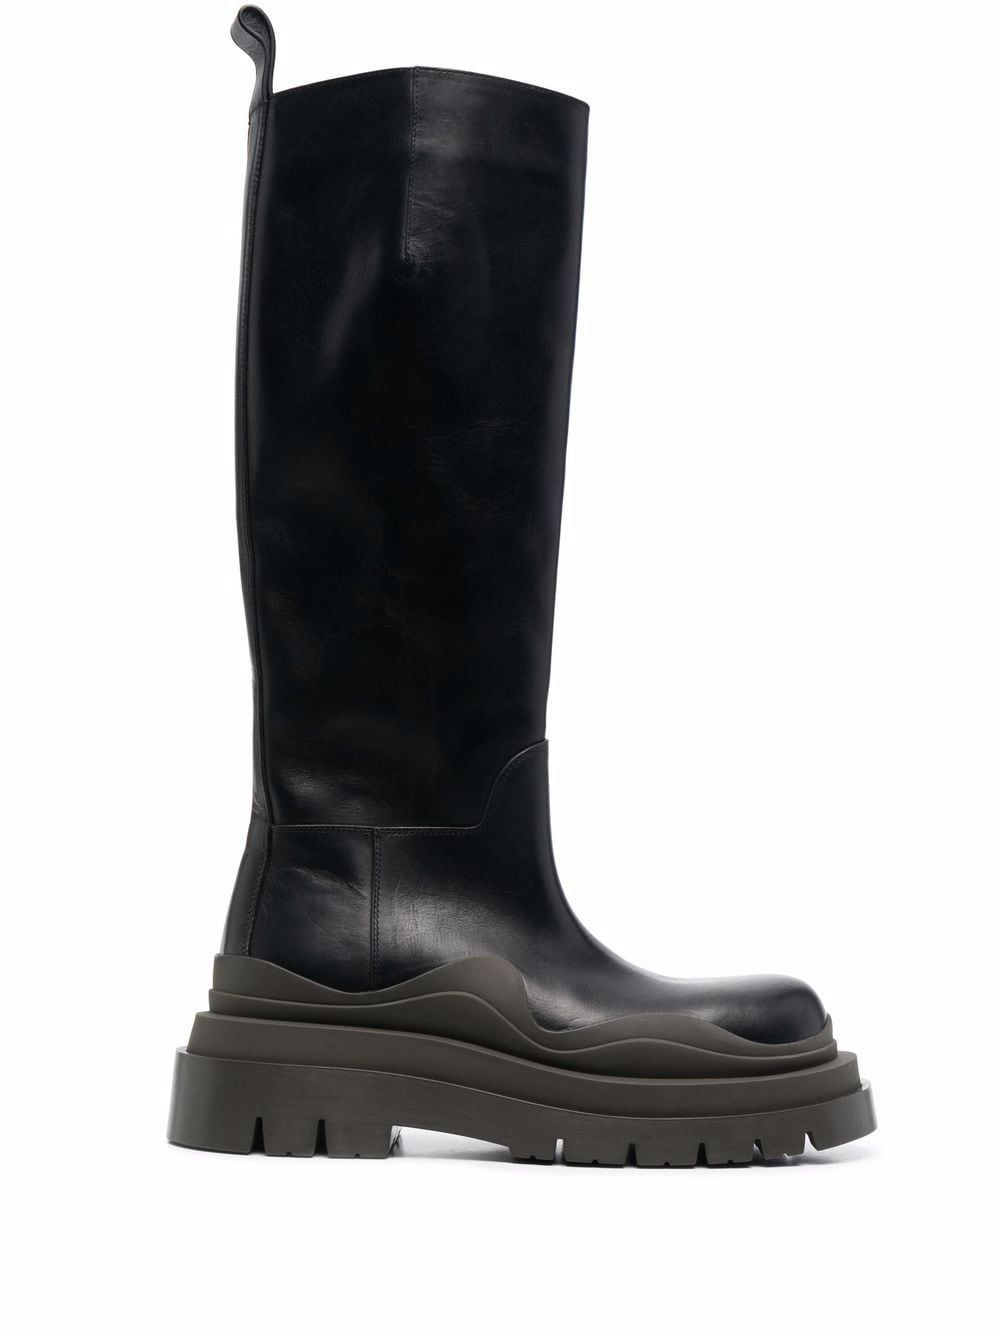 Bv tire leather boots